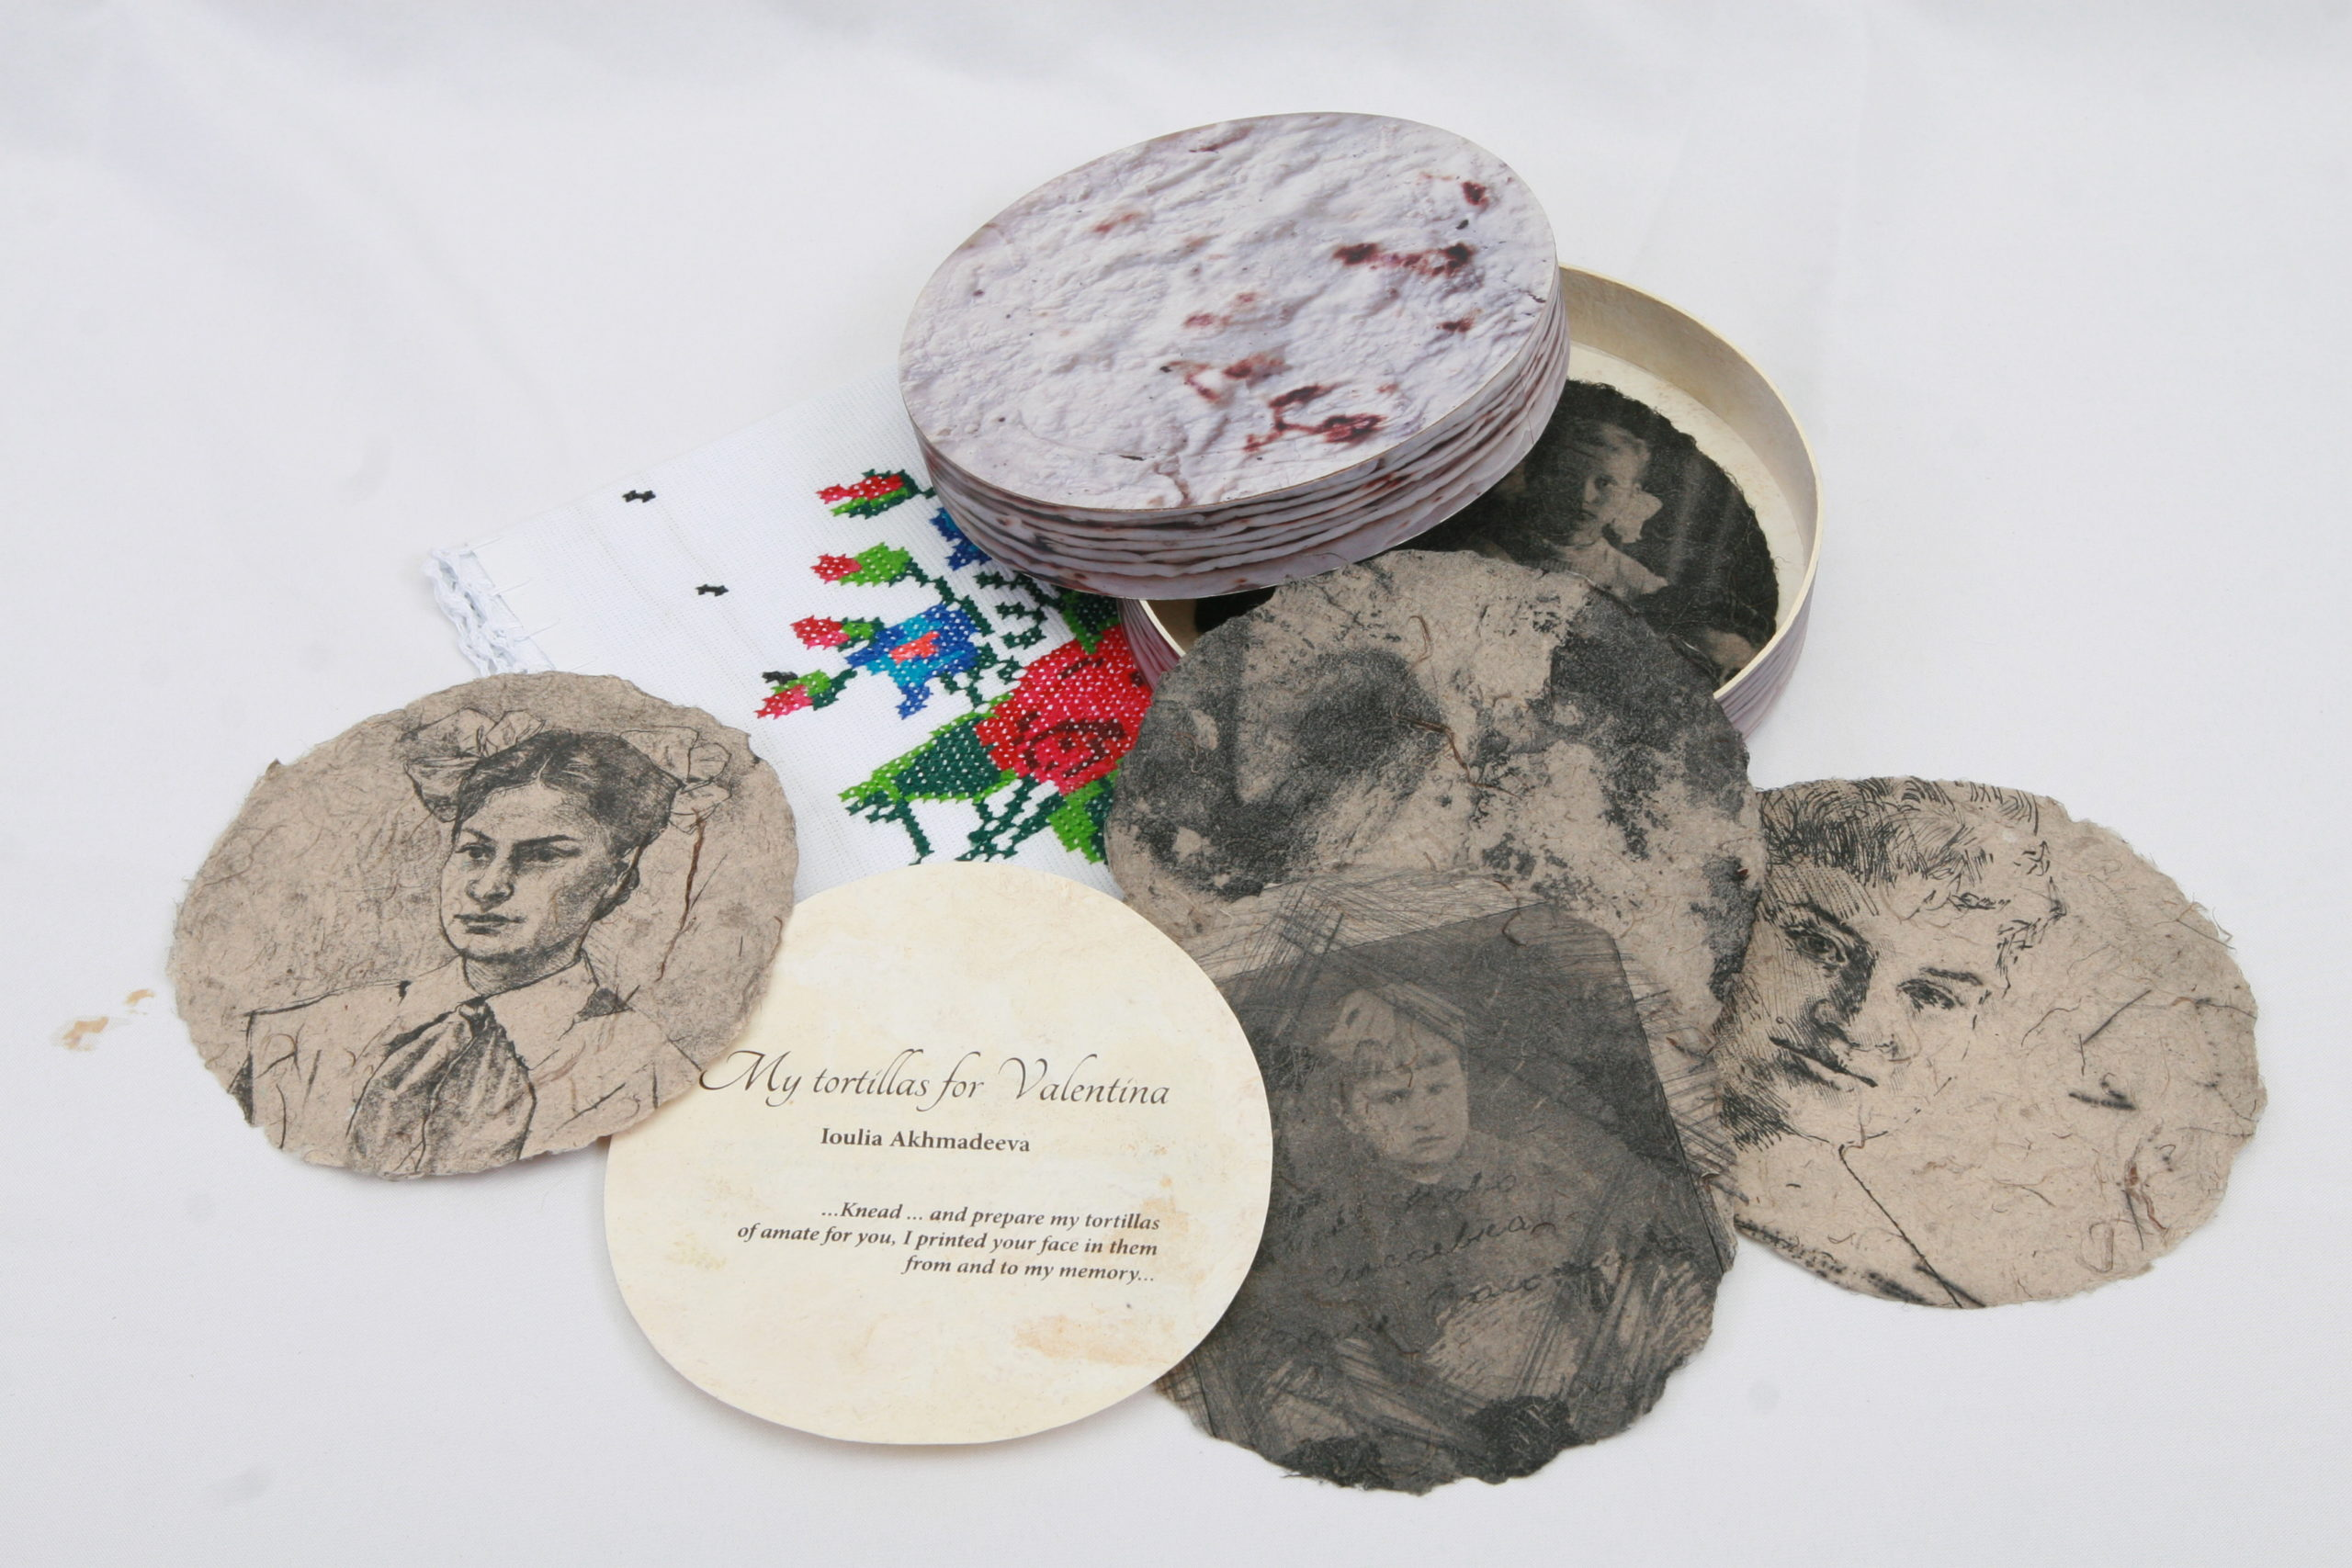 A spread of separate, round paper pages coming out of their circular box